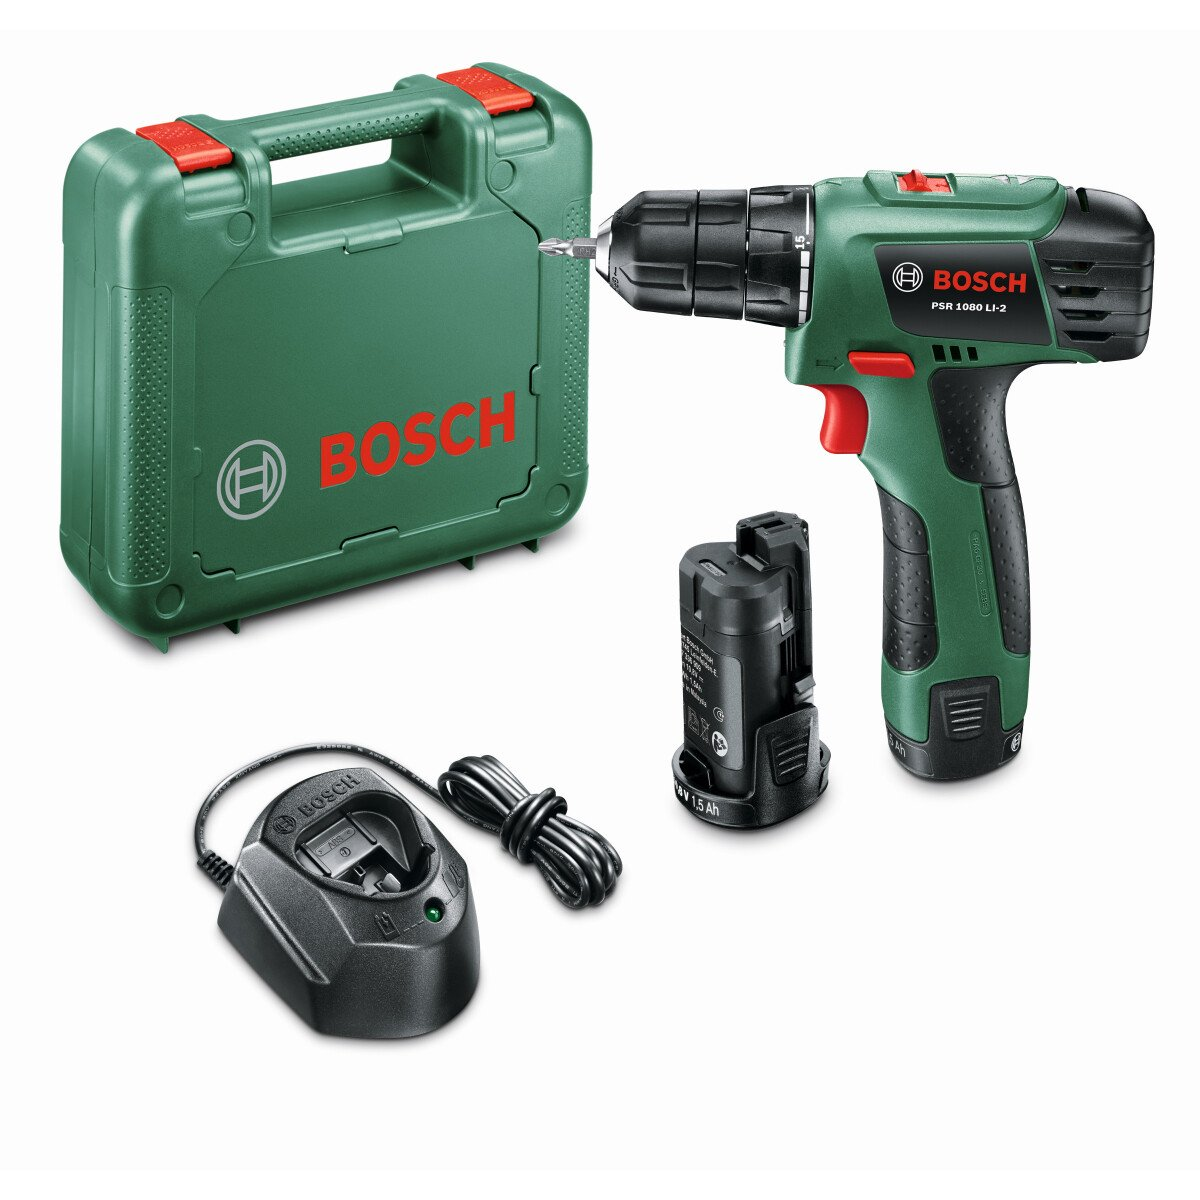 Bosch EasyDrill 1200 12V Two-Speed Drill/Driver 1X1.5Ah